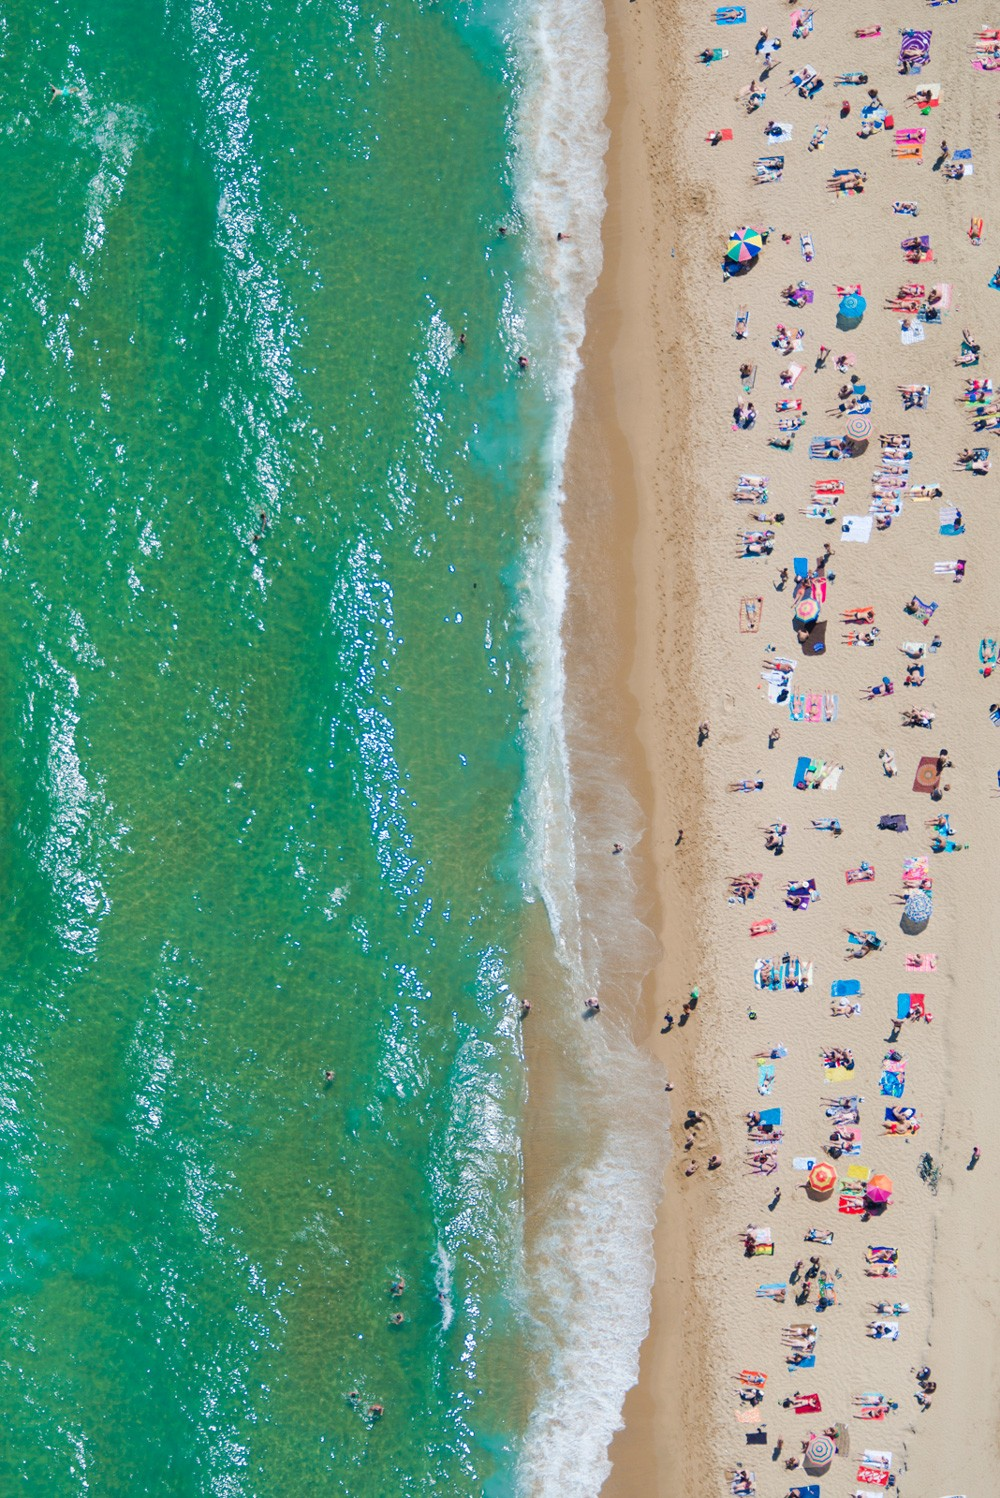 Beaches seen from the sky: from the Amalfi cliffs to the skate park of ...: www.cct-seecity.com/en/2016/06/beaches-seen-from-the-sky